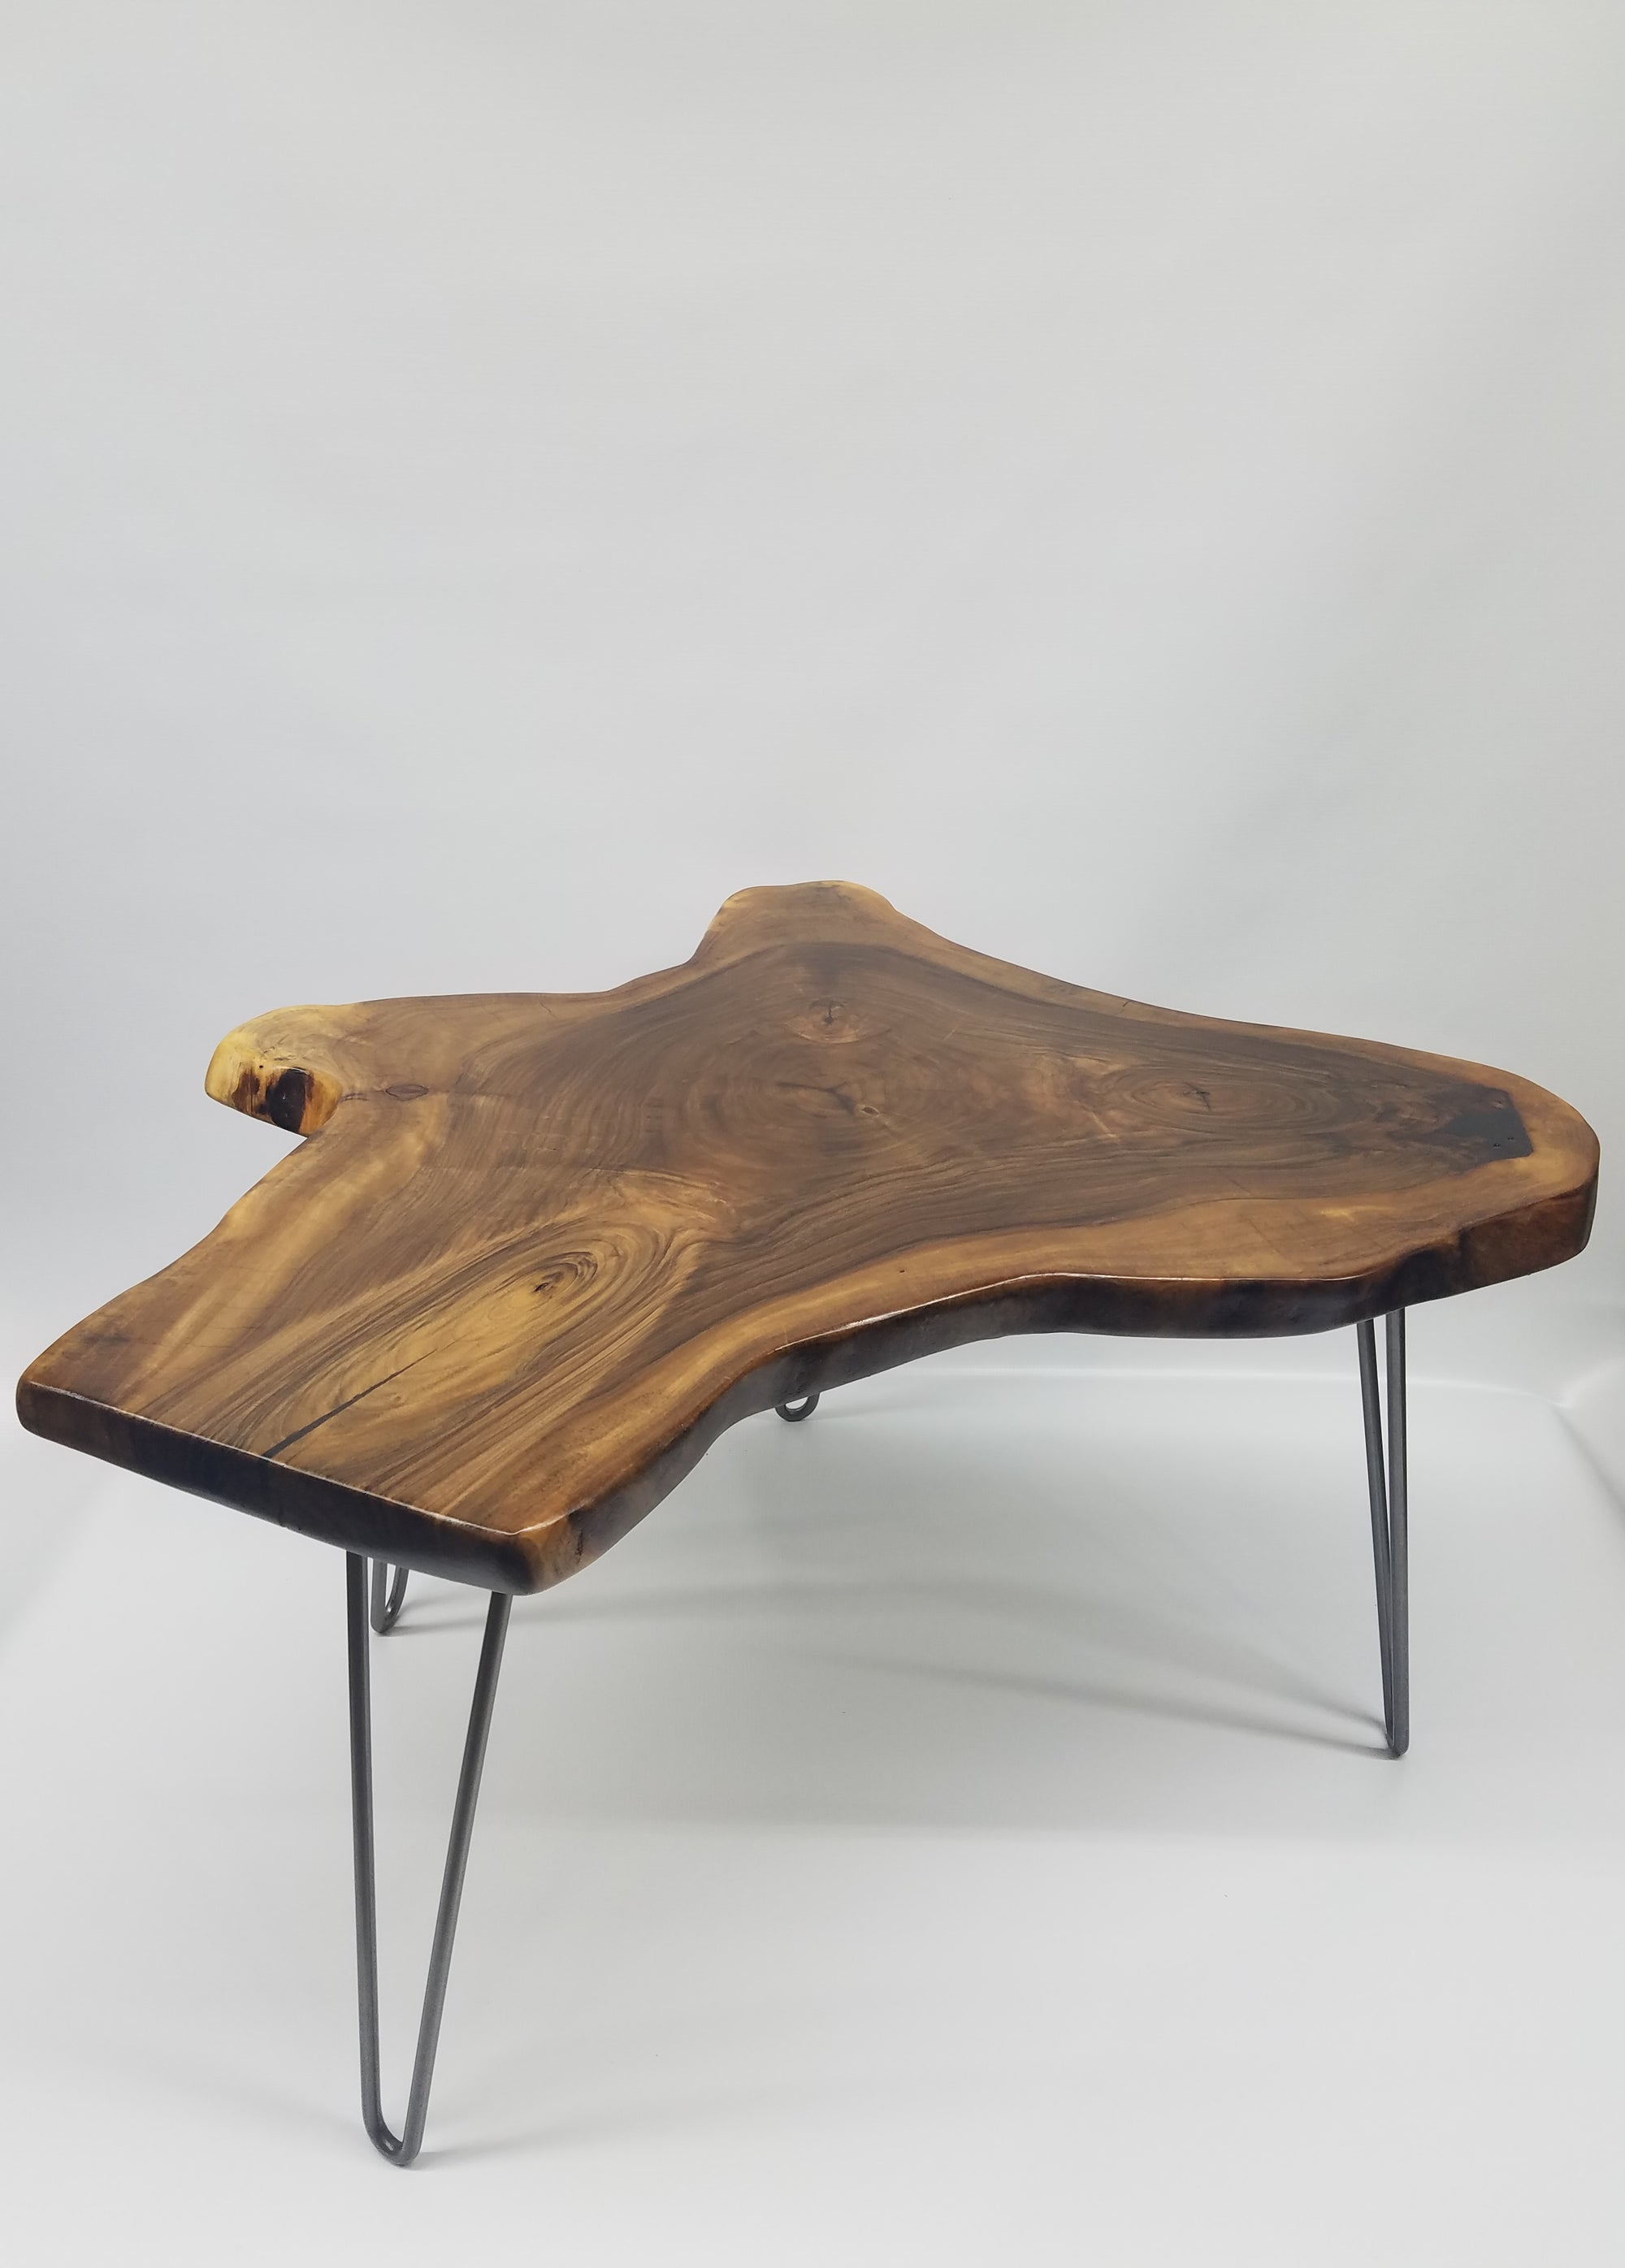 Live Edge Coffee Table- English Walnut- Tree Slice- Organic Shape- Natural Wood- Round Table- Mid Century- Modern- Rustic- Dark Wood- Cool